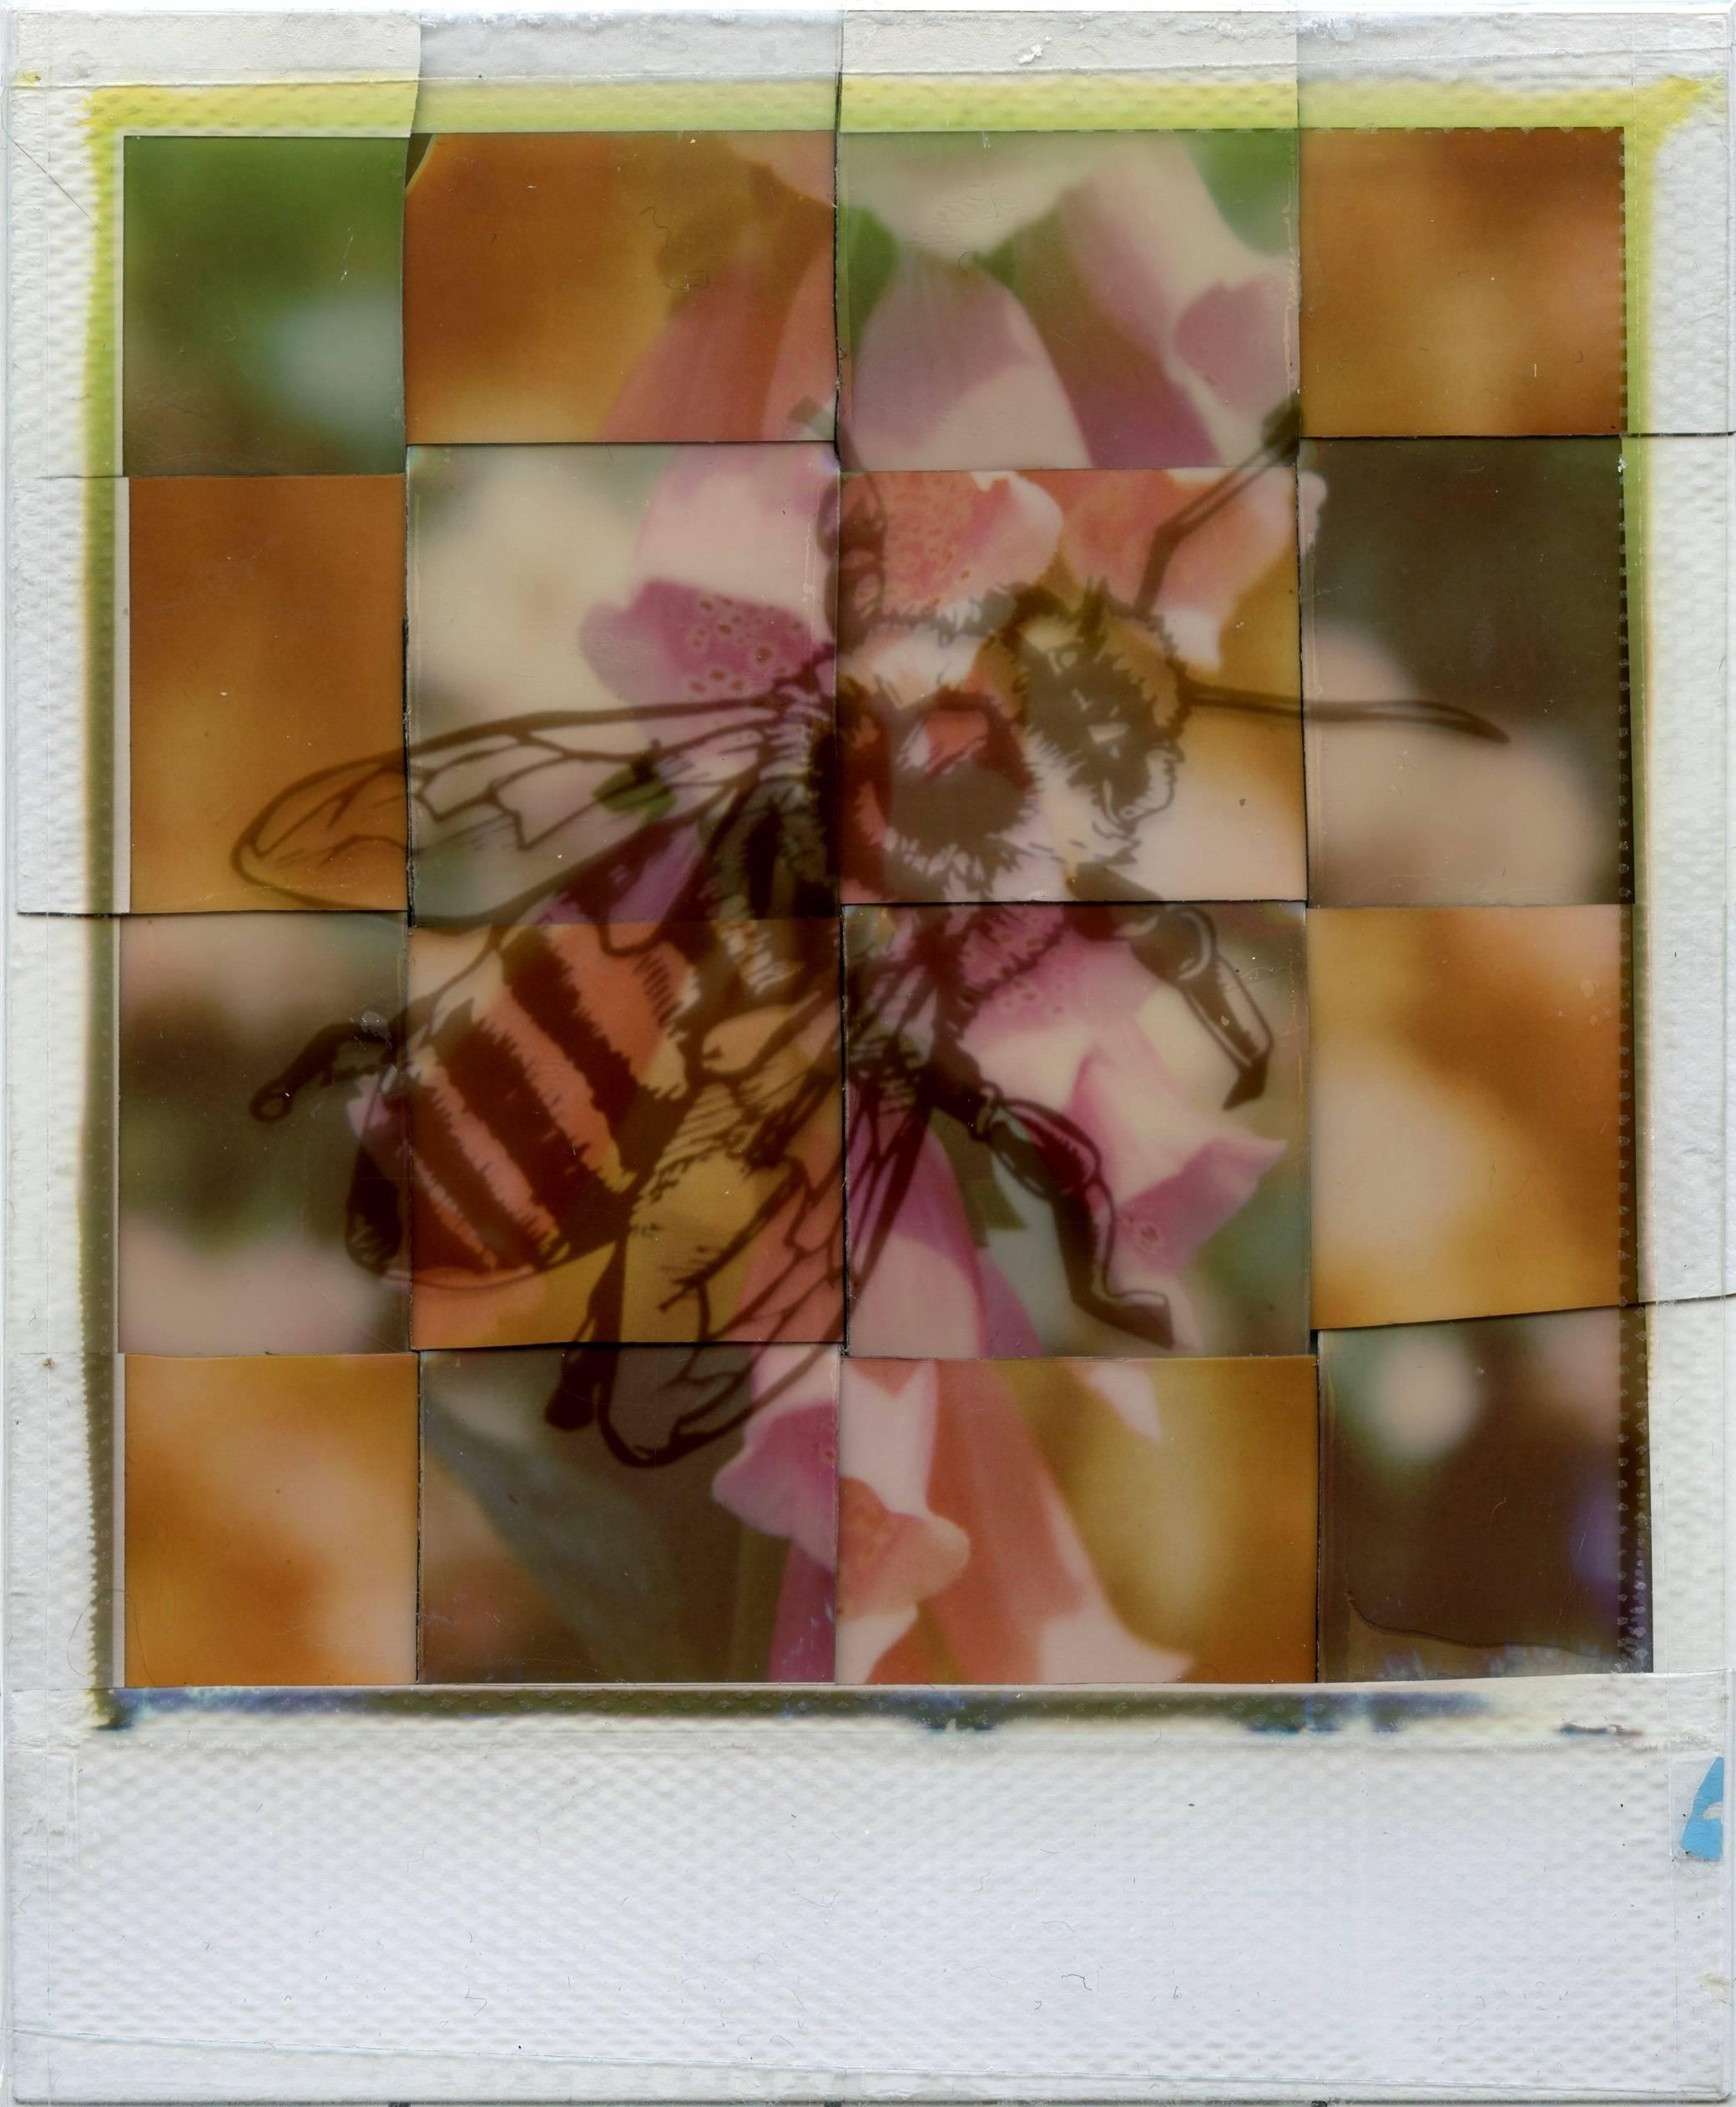 Generation A - Contemporary, Polaroid, Photograph, Bees, Abstract, Color